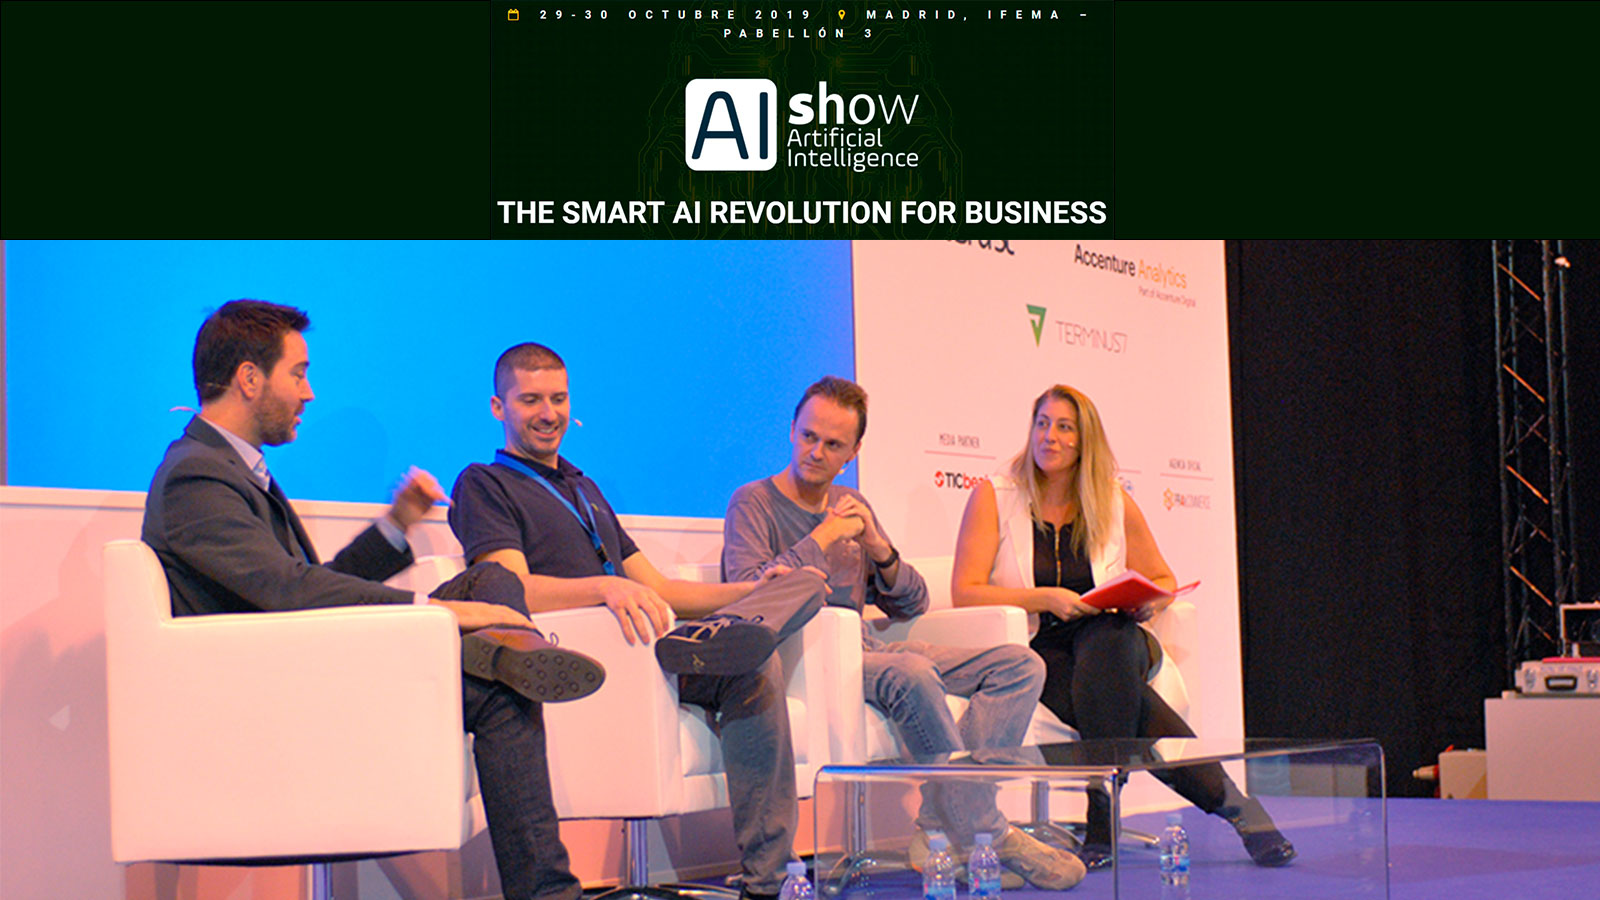 Presentation about Artificial Intelligence in the event AIshow